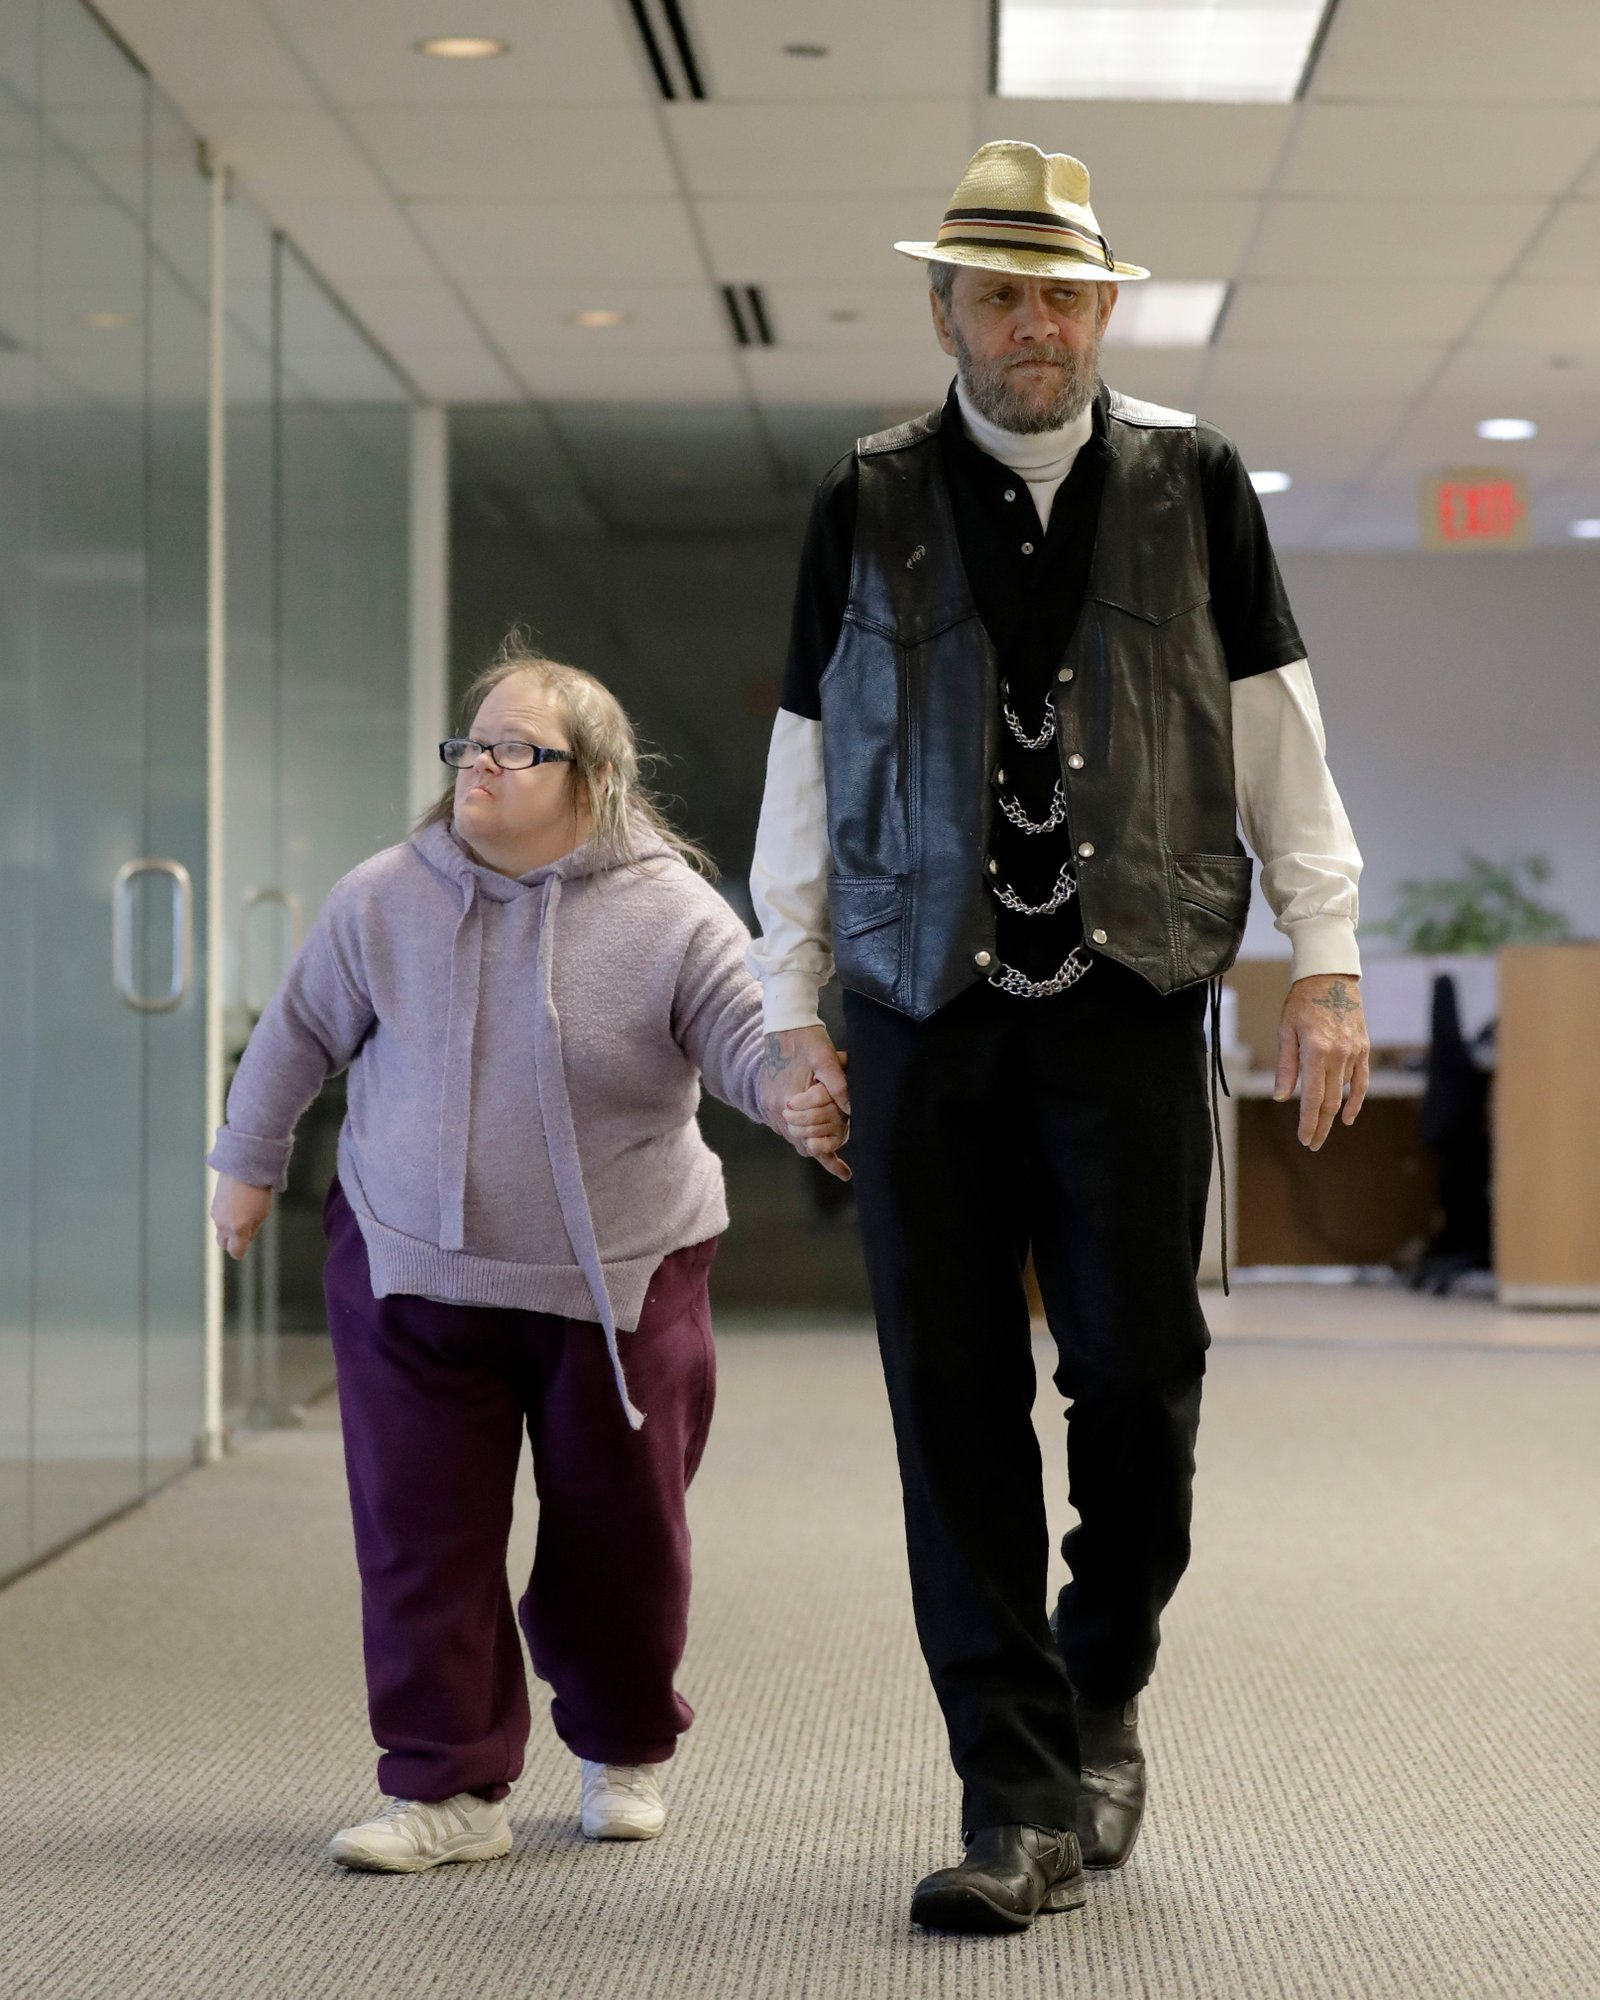 In this Saturday, Dec. 21, 2019 photo, Bobby Goldberg and his sister Debbie arrive at the office of his lawyer, Melissa Anderson, in Bannockburn, Ill. Goldberg has filed a lawsuit claiming he was abused more than 1,000 times in multiple states and countries by the late Donald McGuire, a prominent American Jesuit priest who had close ties to Mother Teresa. (AP Photo/Nam Y. Huh)